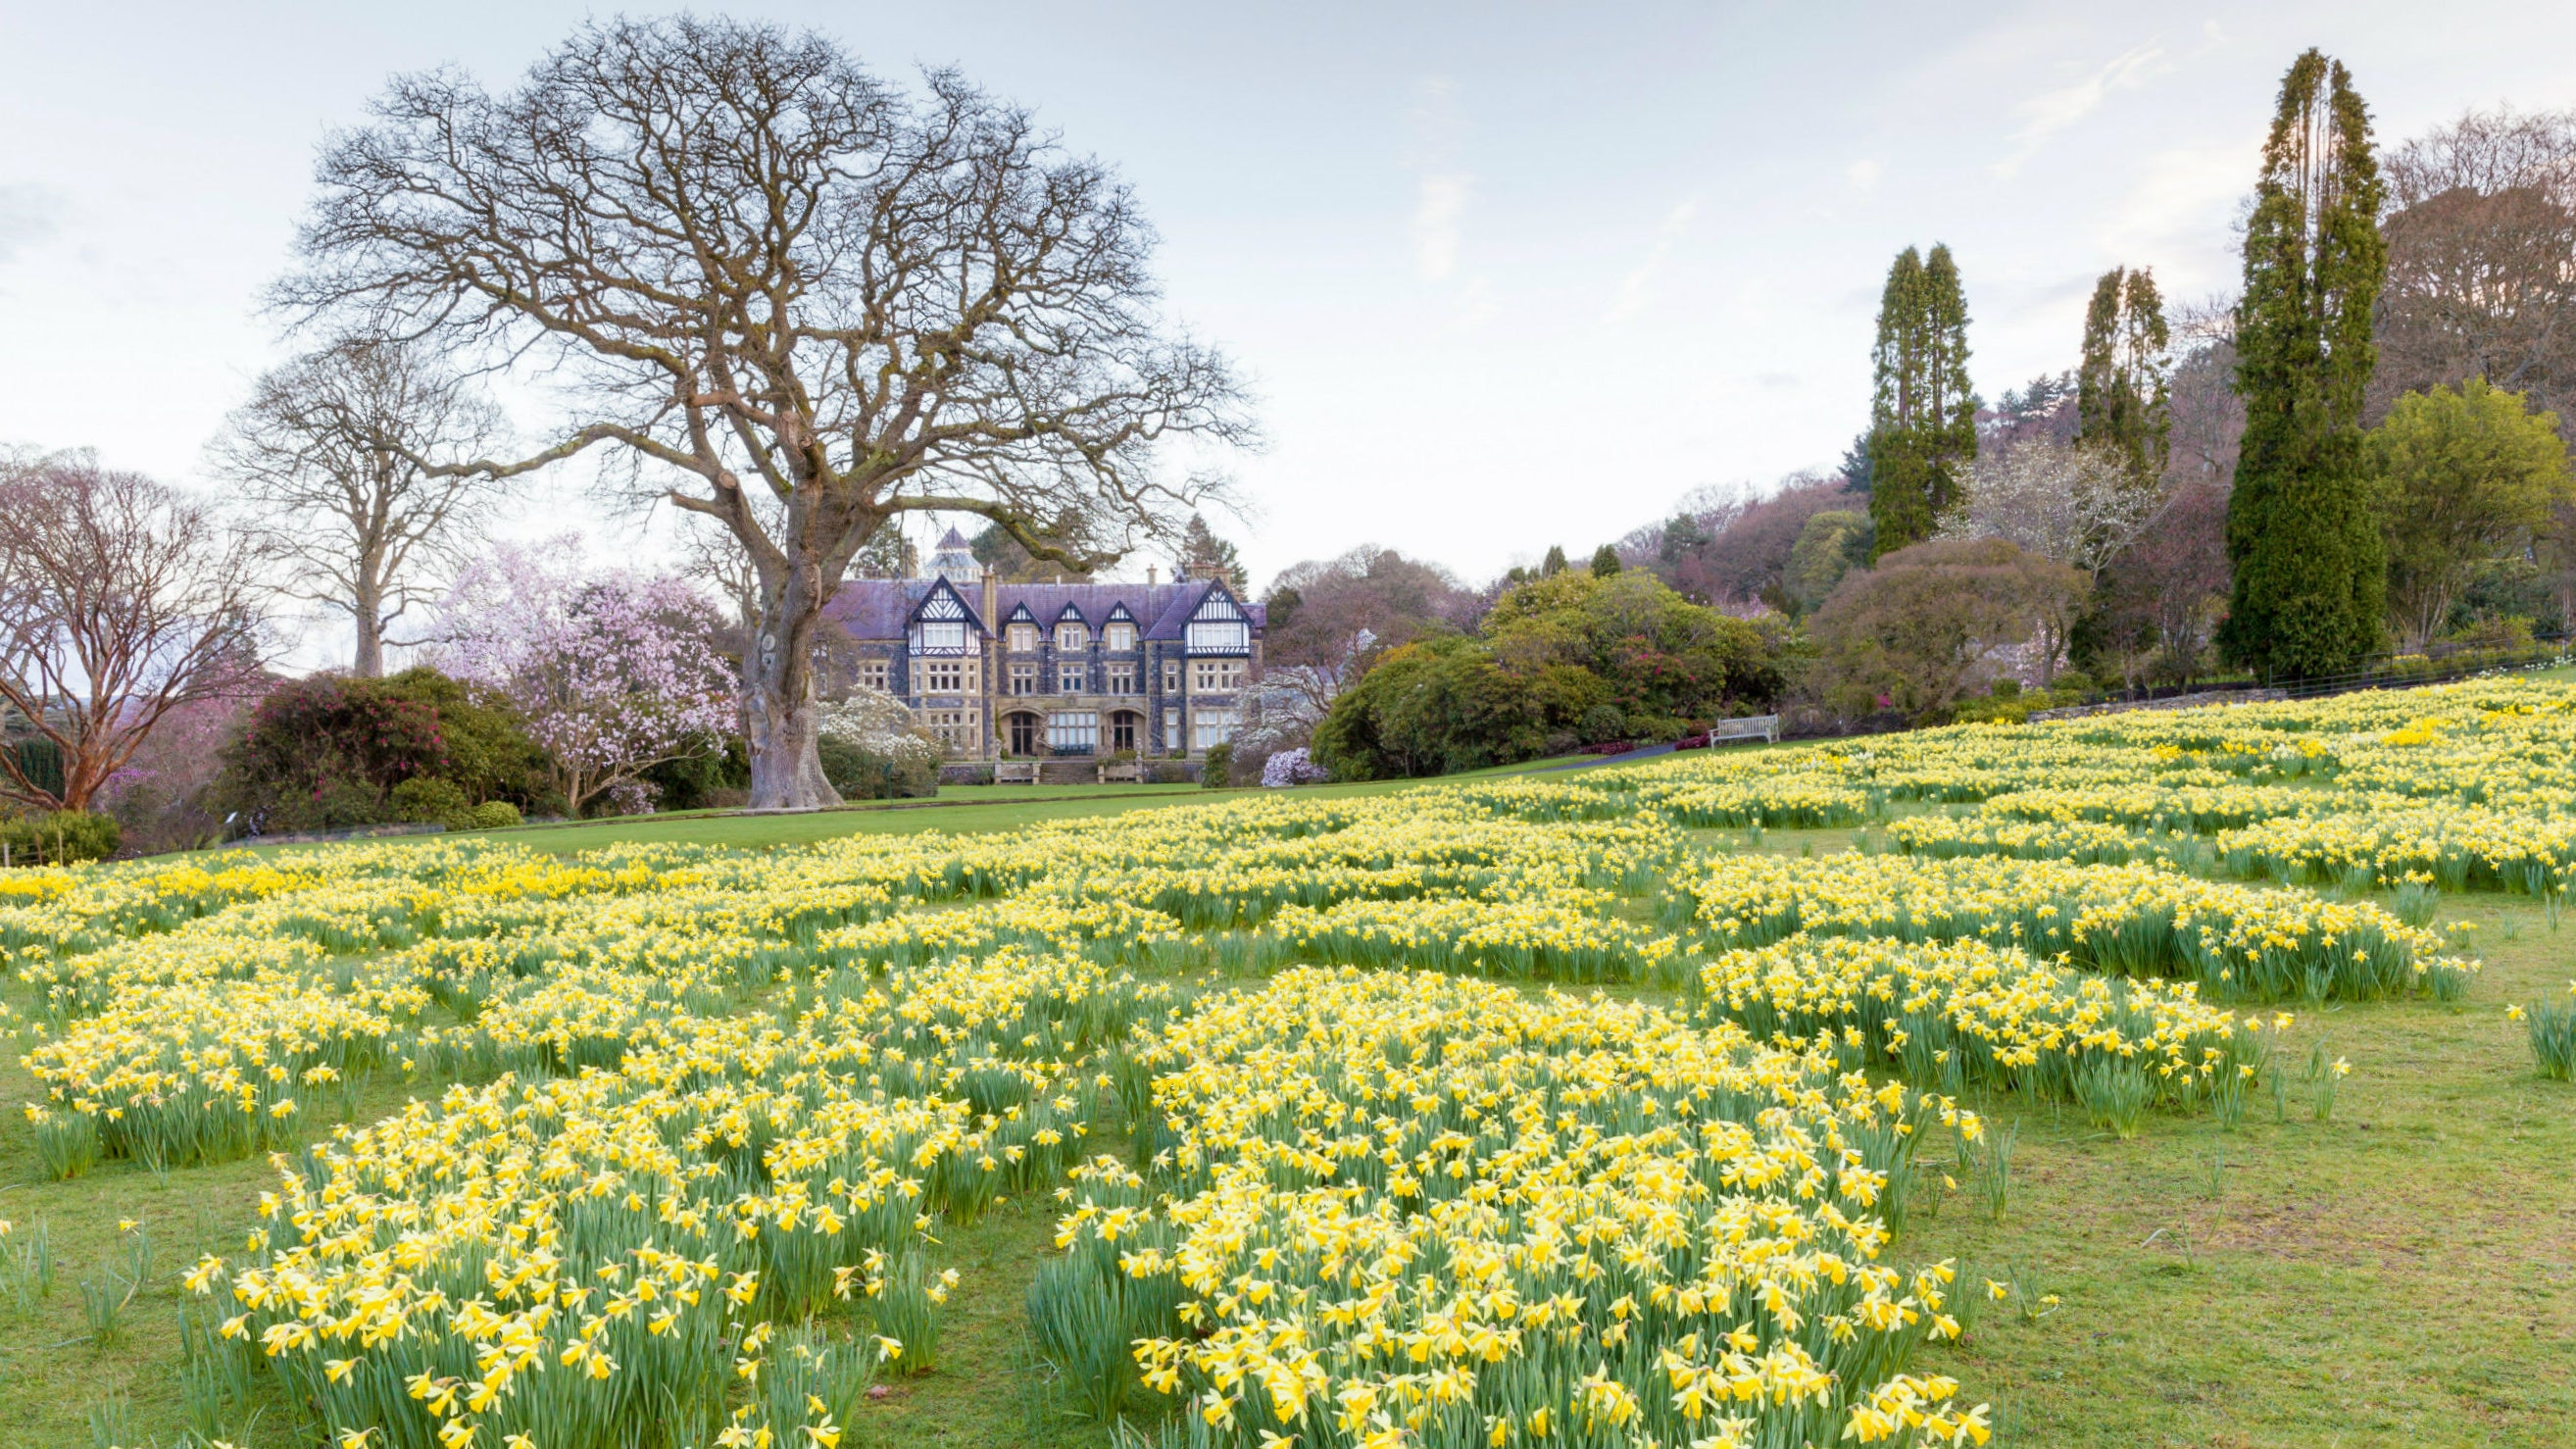 Daffodils in the Old Park at Bodnant Garden